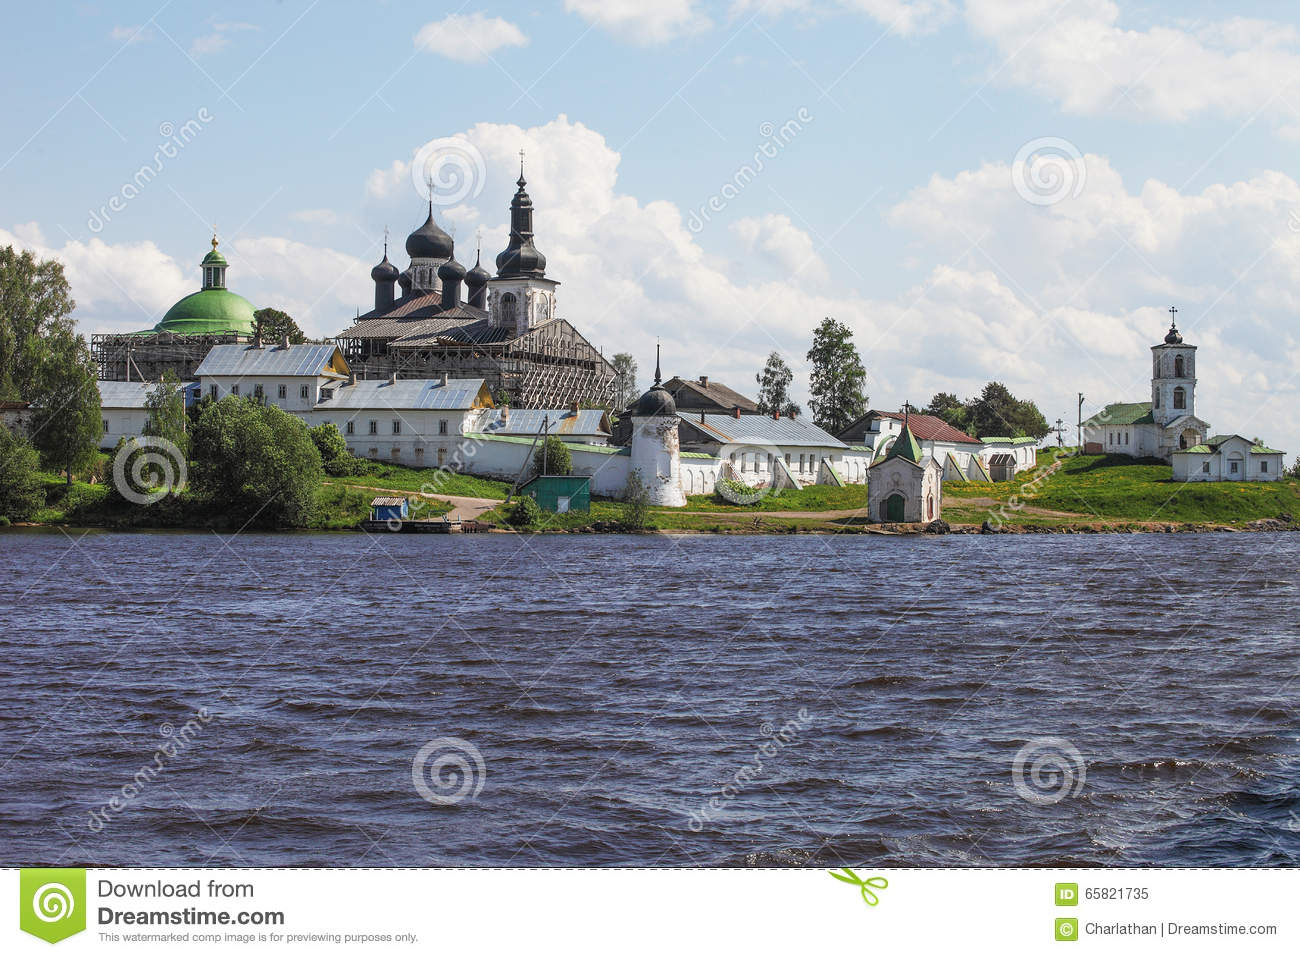 Village Goritsy Vologda region: attractions, photos, hotels